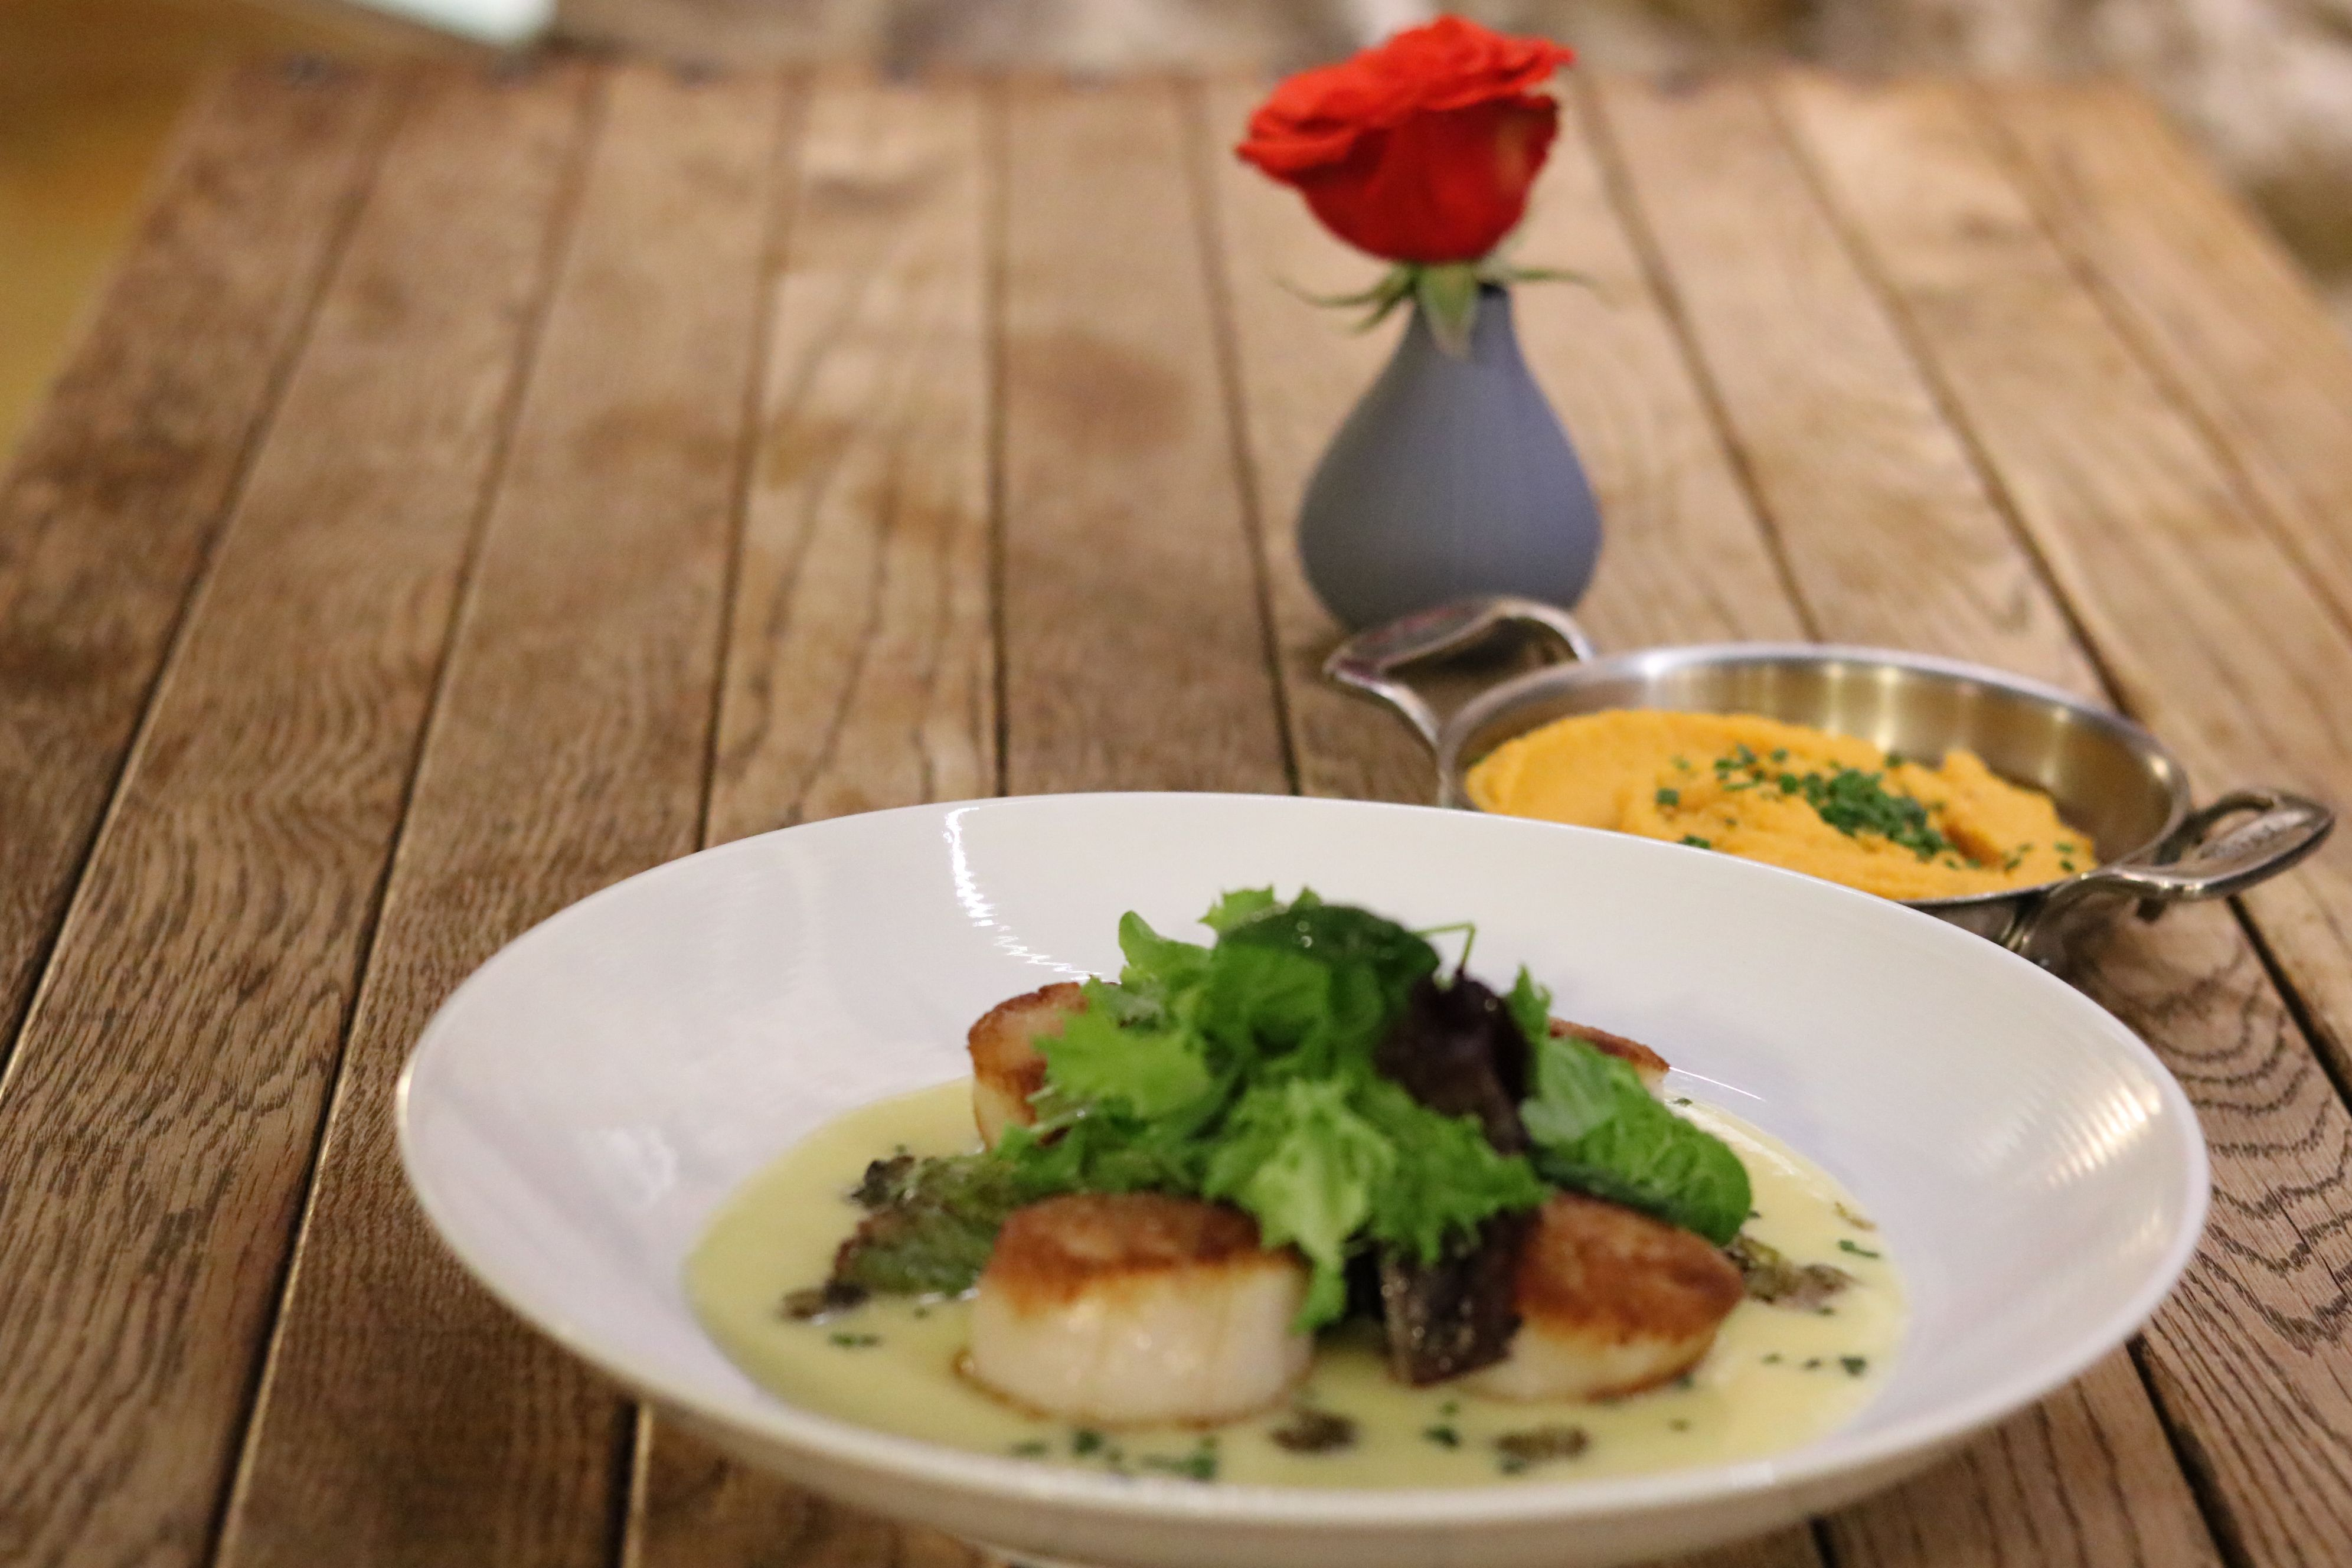 Scallops in a butter wine caper sauce & chipotle mashed potatoes! #theport #stjameshotelrw #foodies